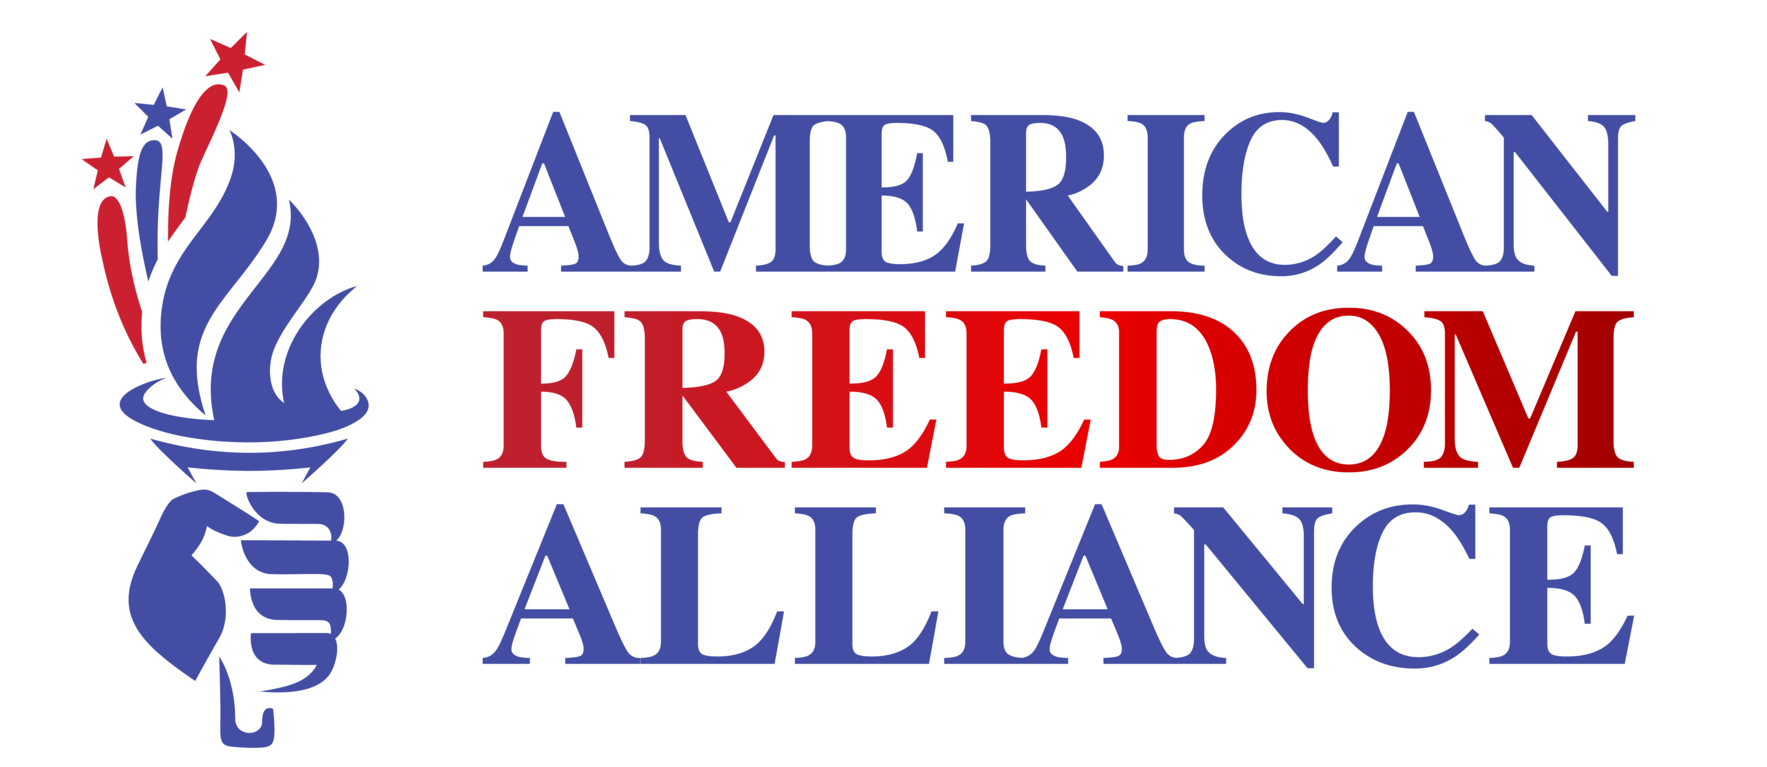 Partner with AFA in our defense of freedom image